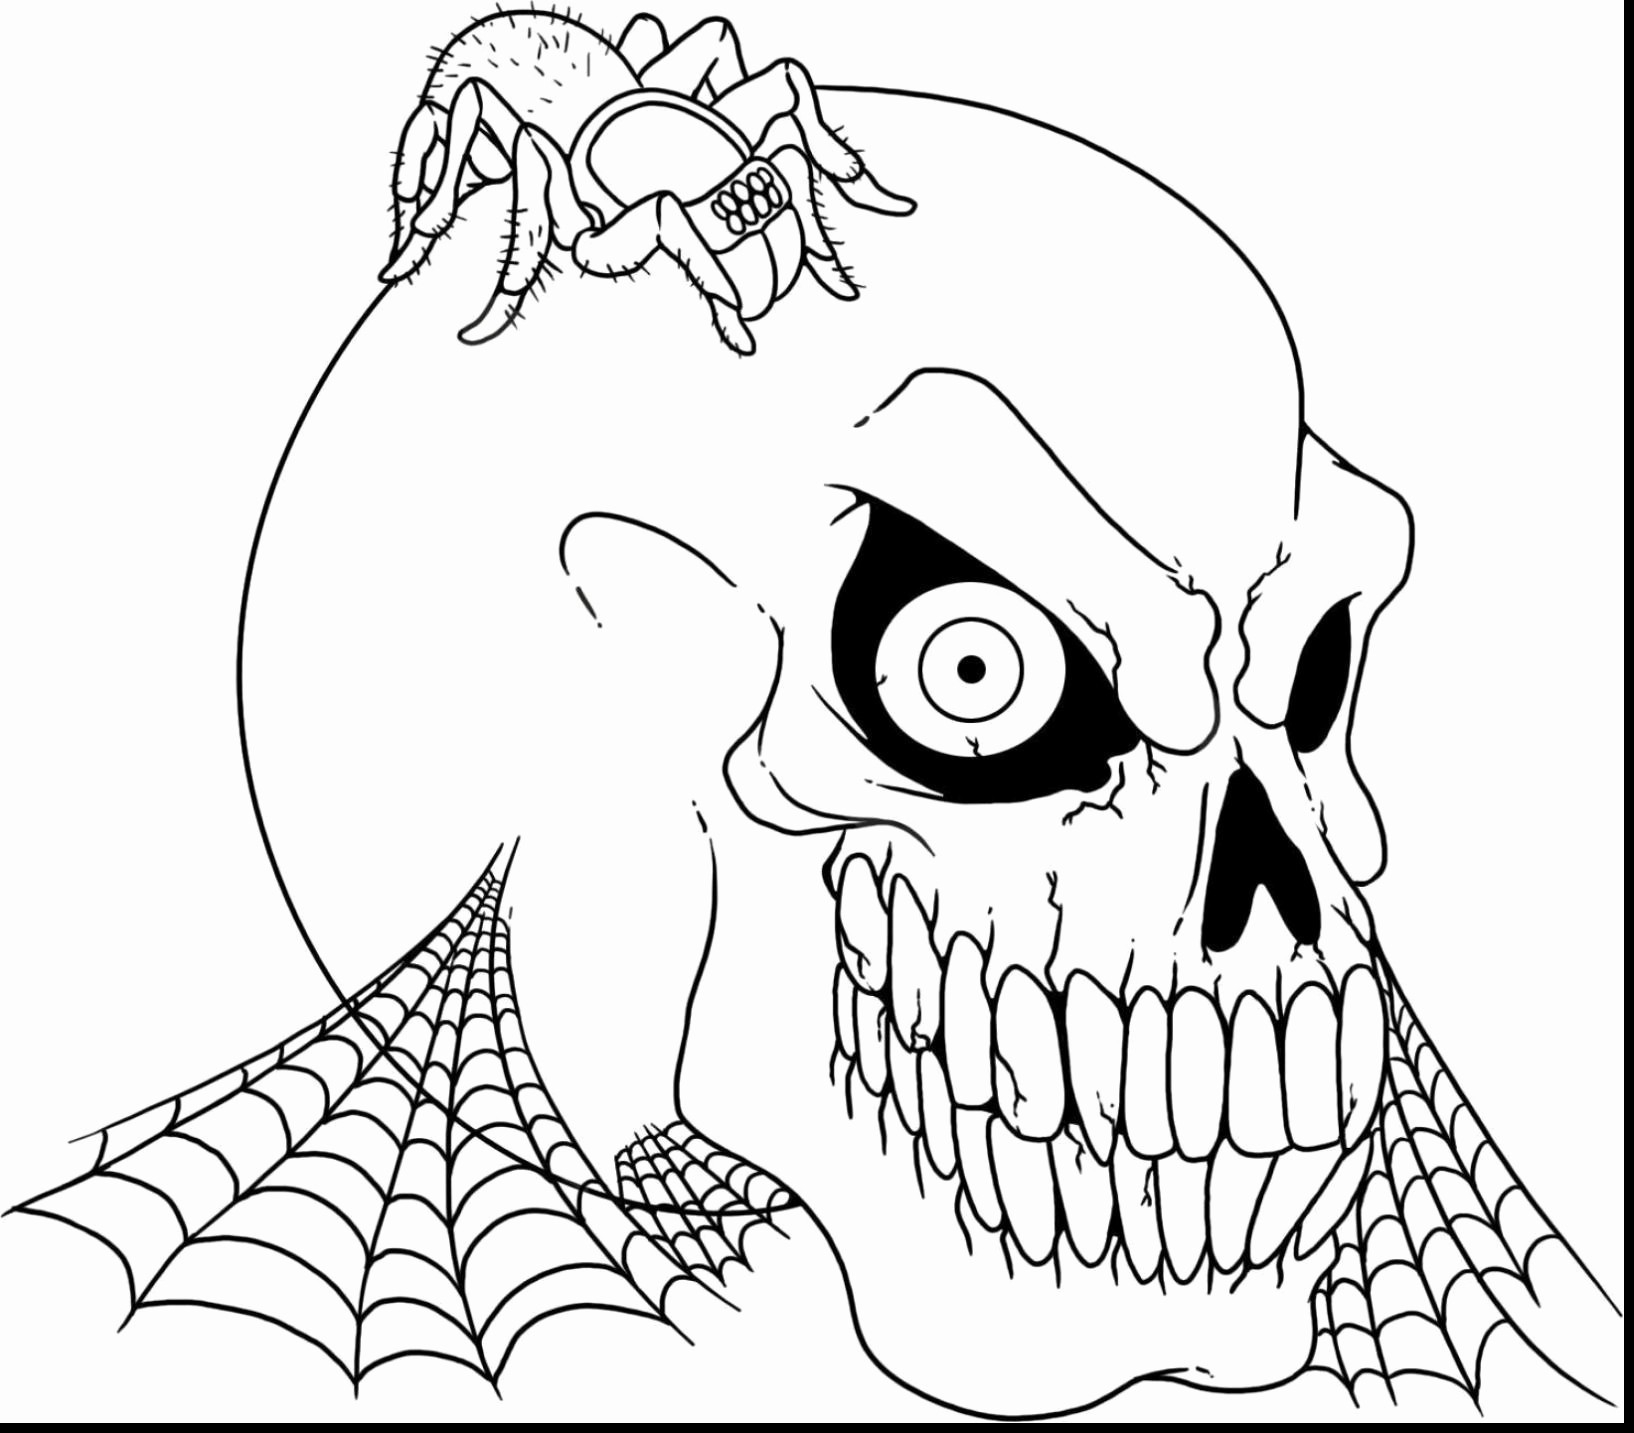 Halloween Coloring Pages Download 10j - Free For kids